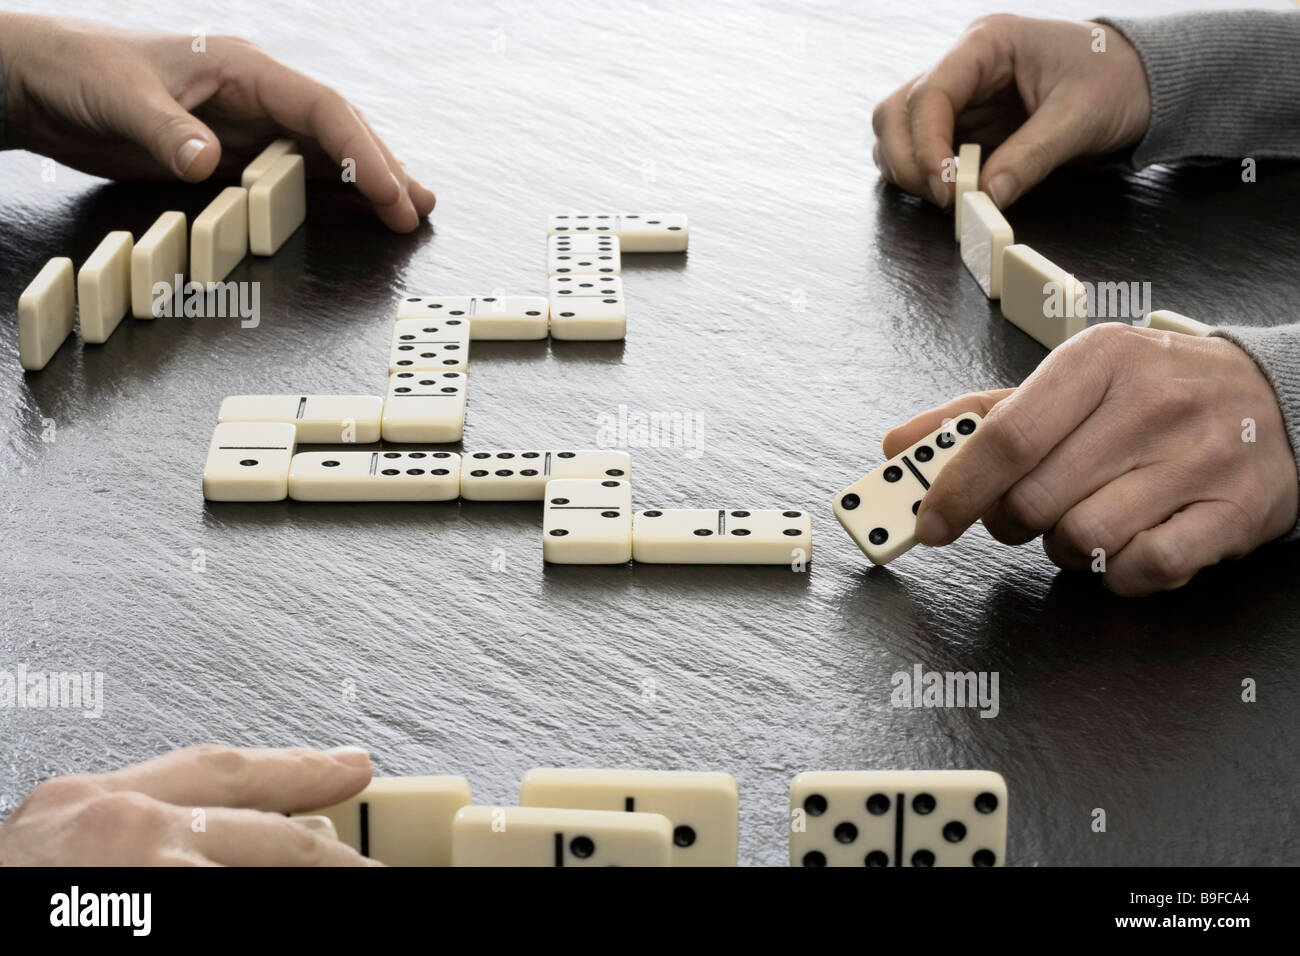 People Playing Dominos Stock Photos & People Playing Dominos Stock ...